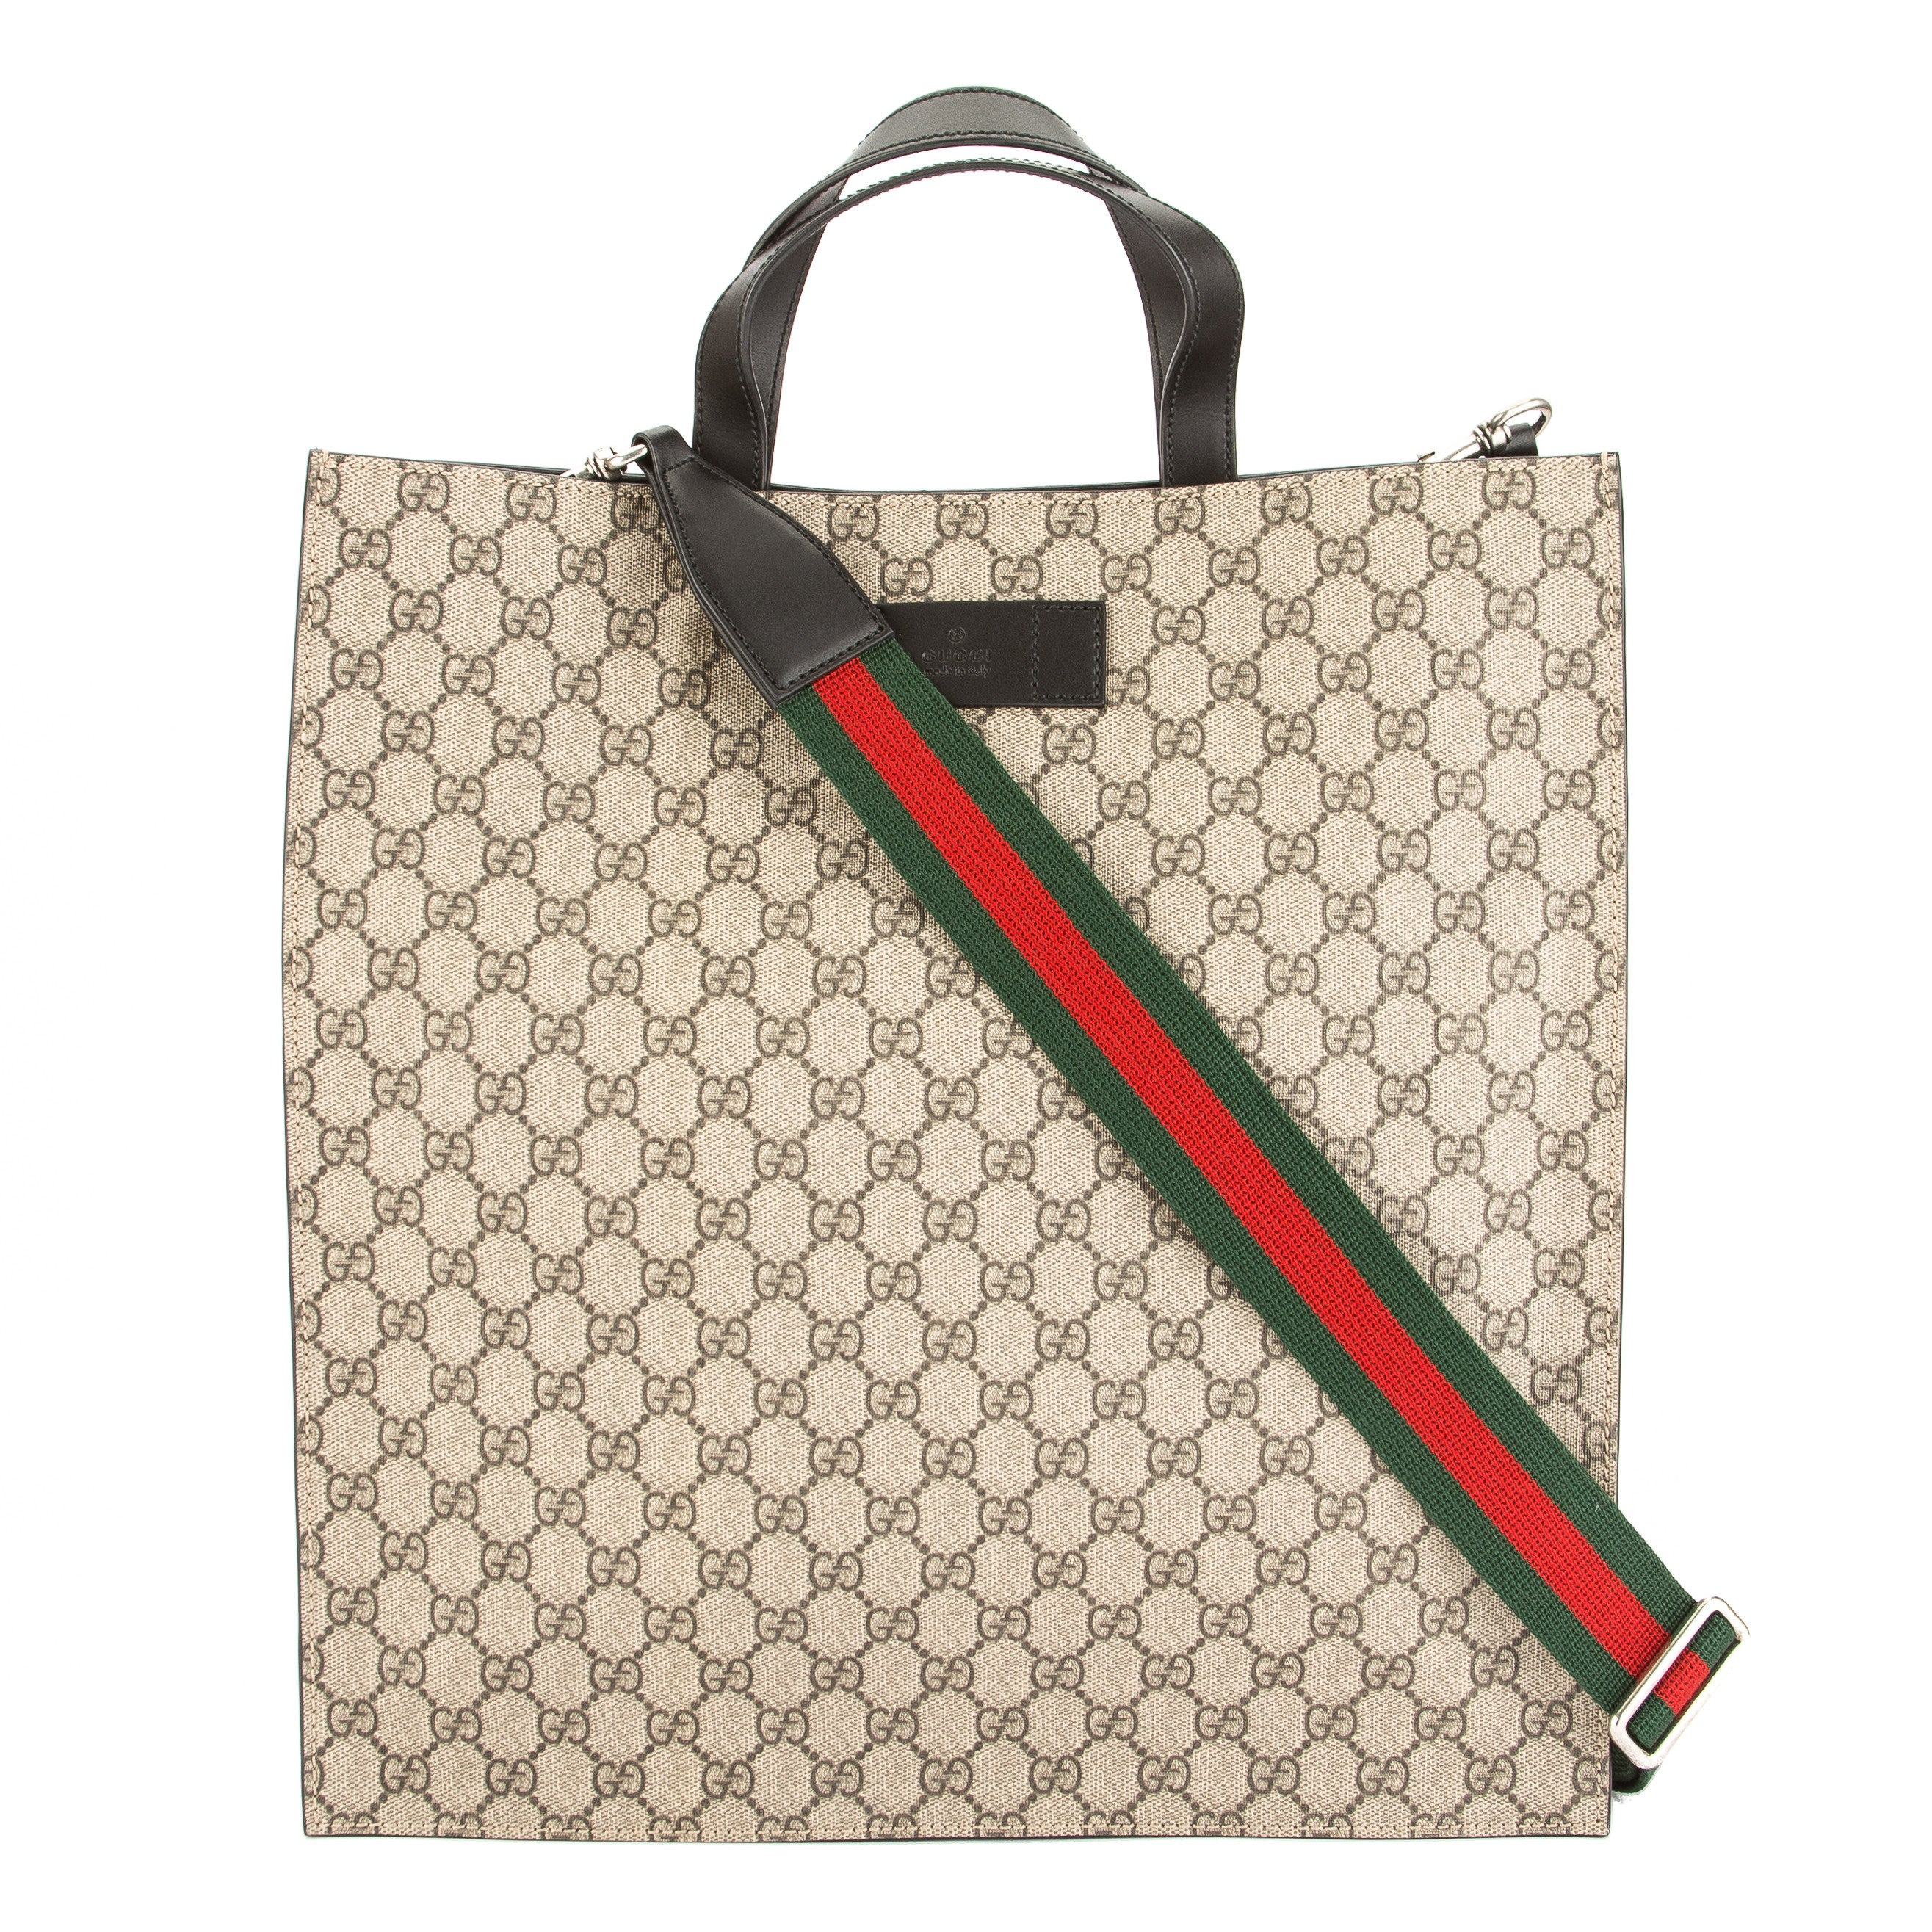 Gucci Brown Leather Soft Gg Supreme Canvas Tote New With Tags